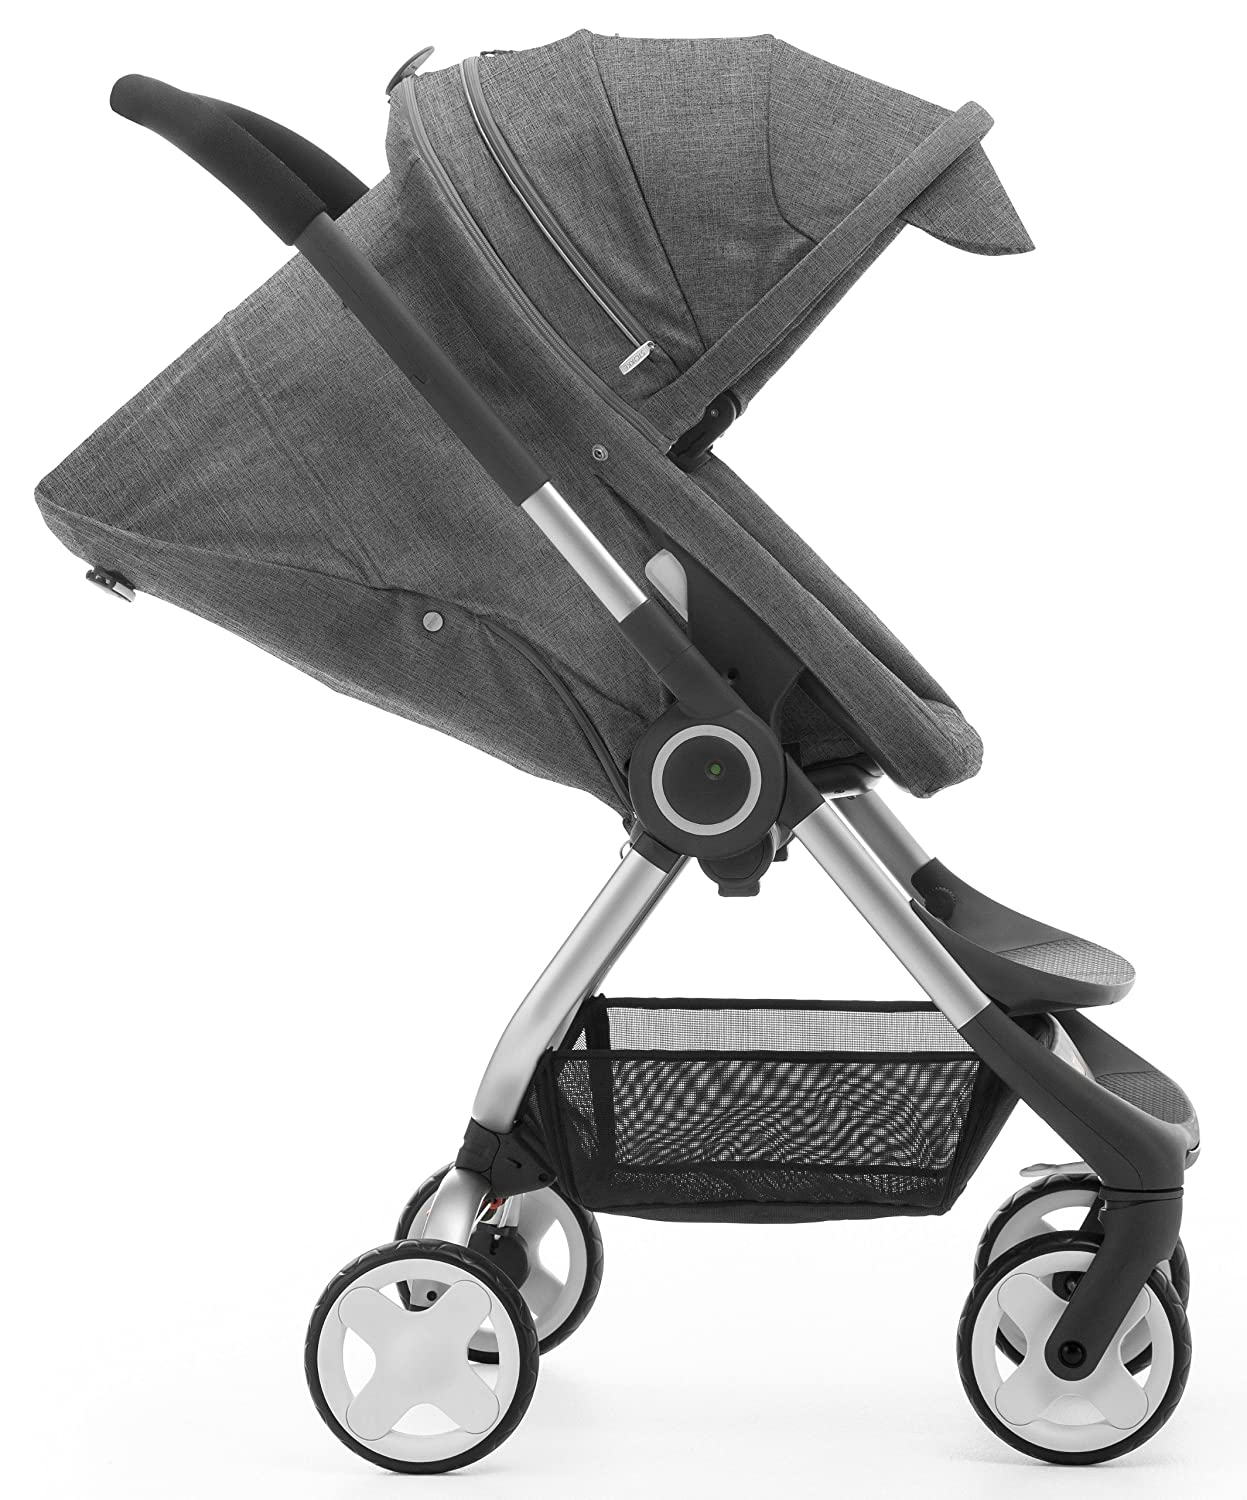 Stokke Scoot Carrito tradicional 1Asiento(s) Negro - Cochecito (Carrito tradicional, 1 Asiento(s), Negro, 15 kg, 640 mm, 540 mm): Amazon.es: Bebé